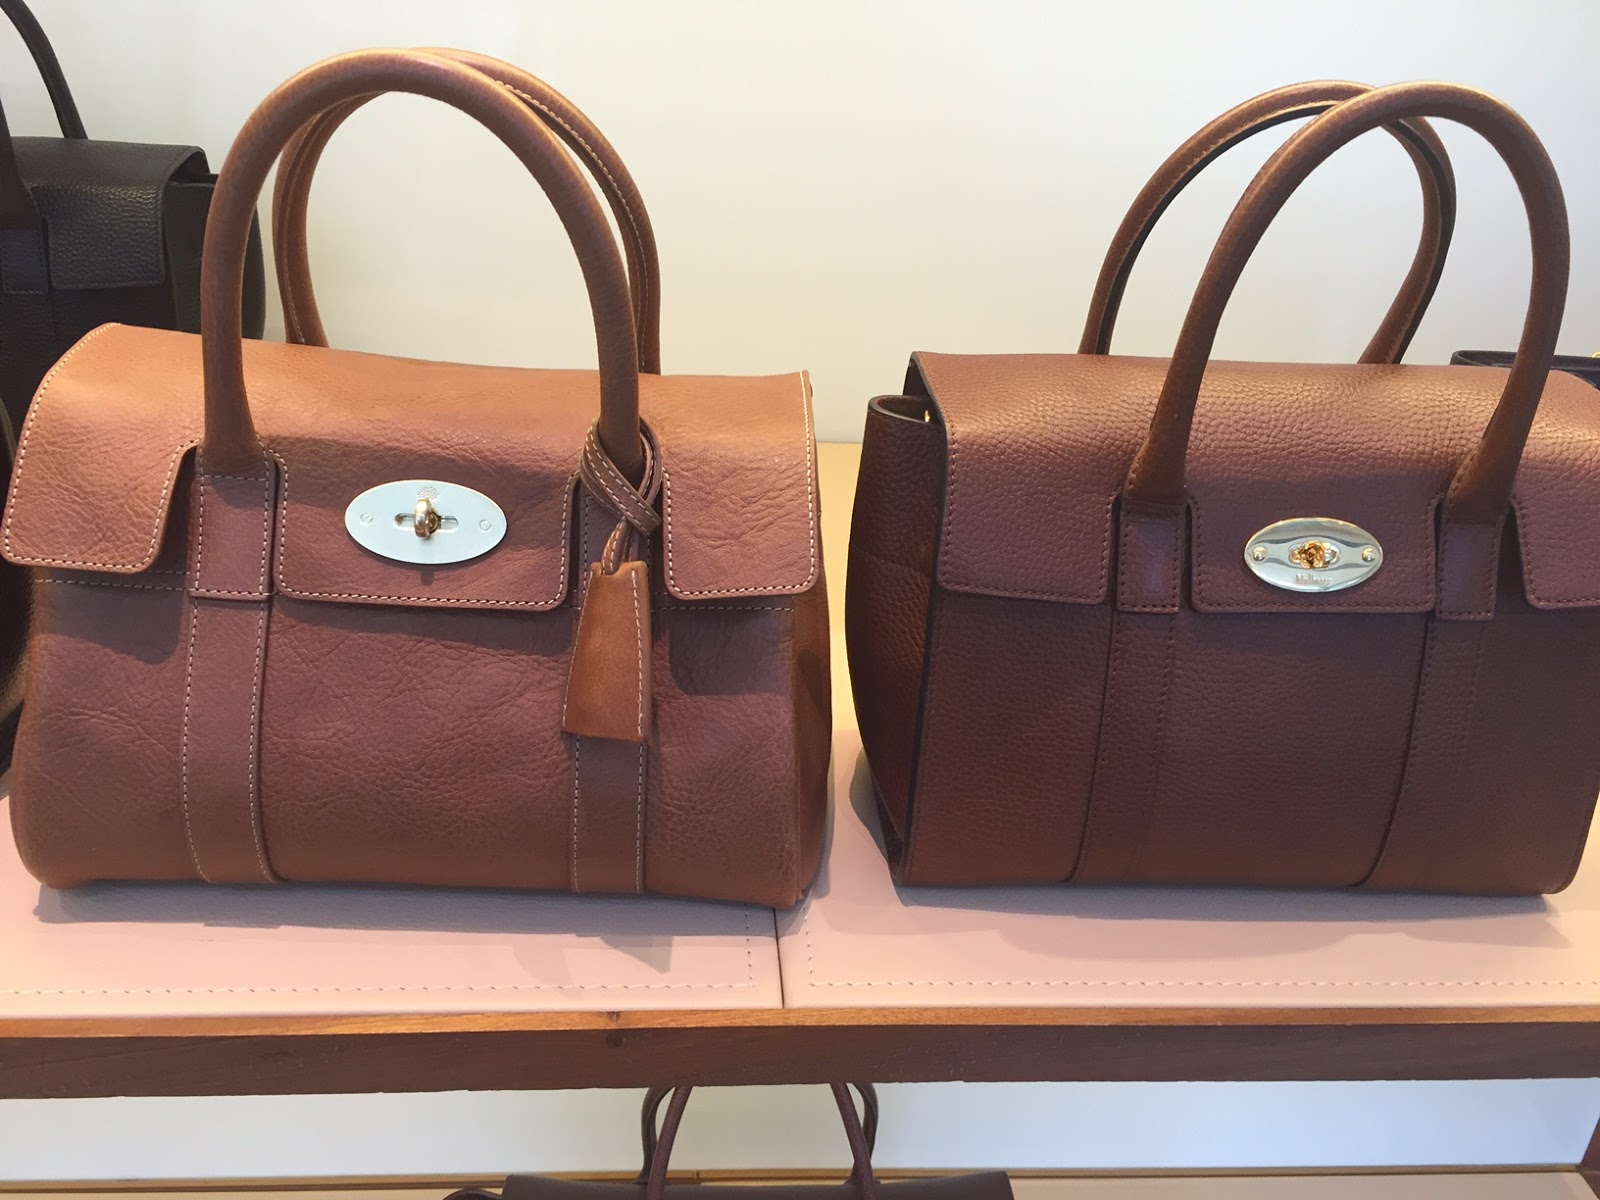 2c60bd0d16 Mulberry Small Bayswater Satchel and New Small Bayswater